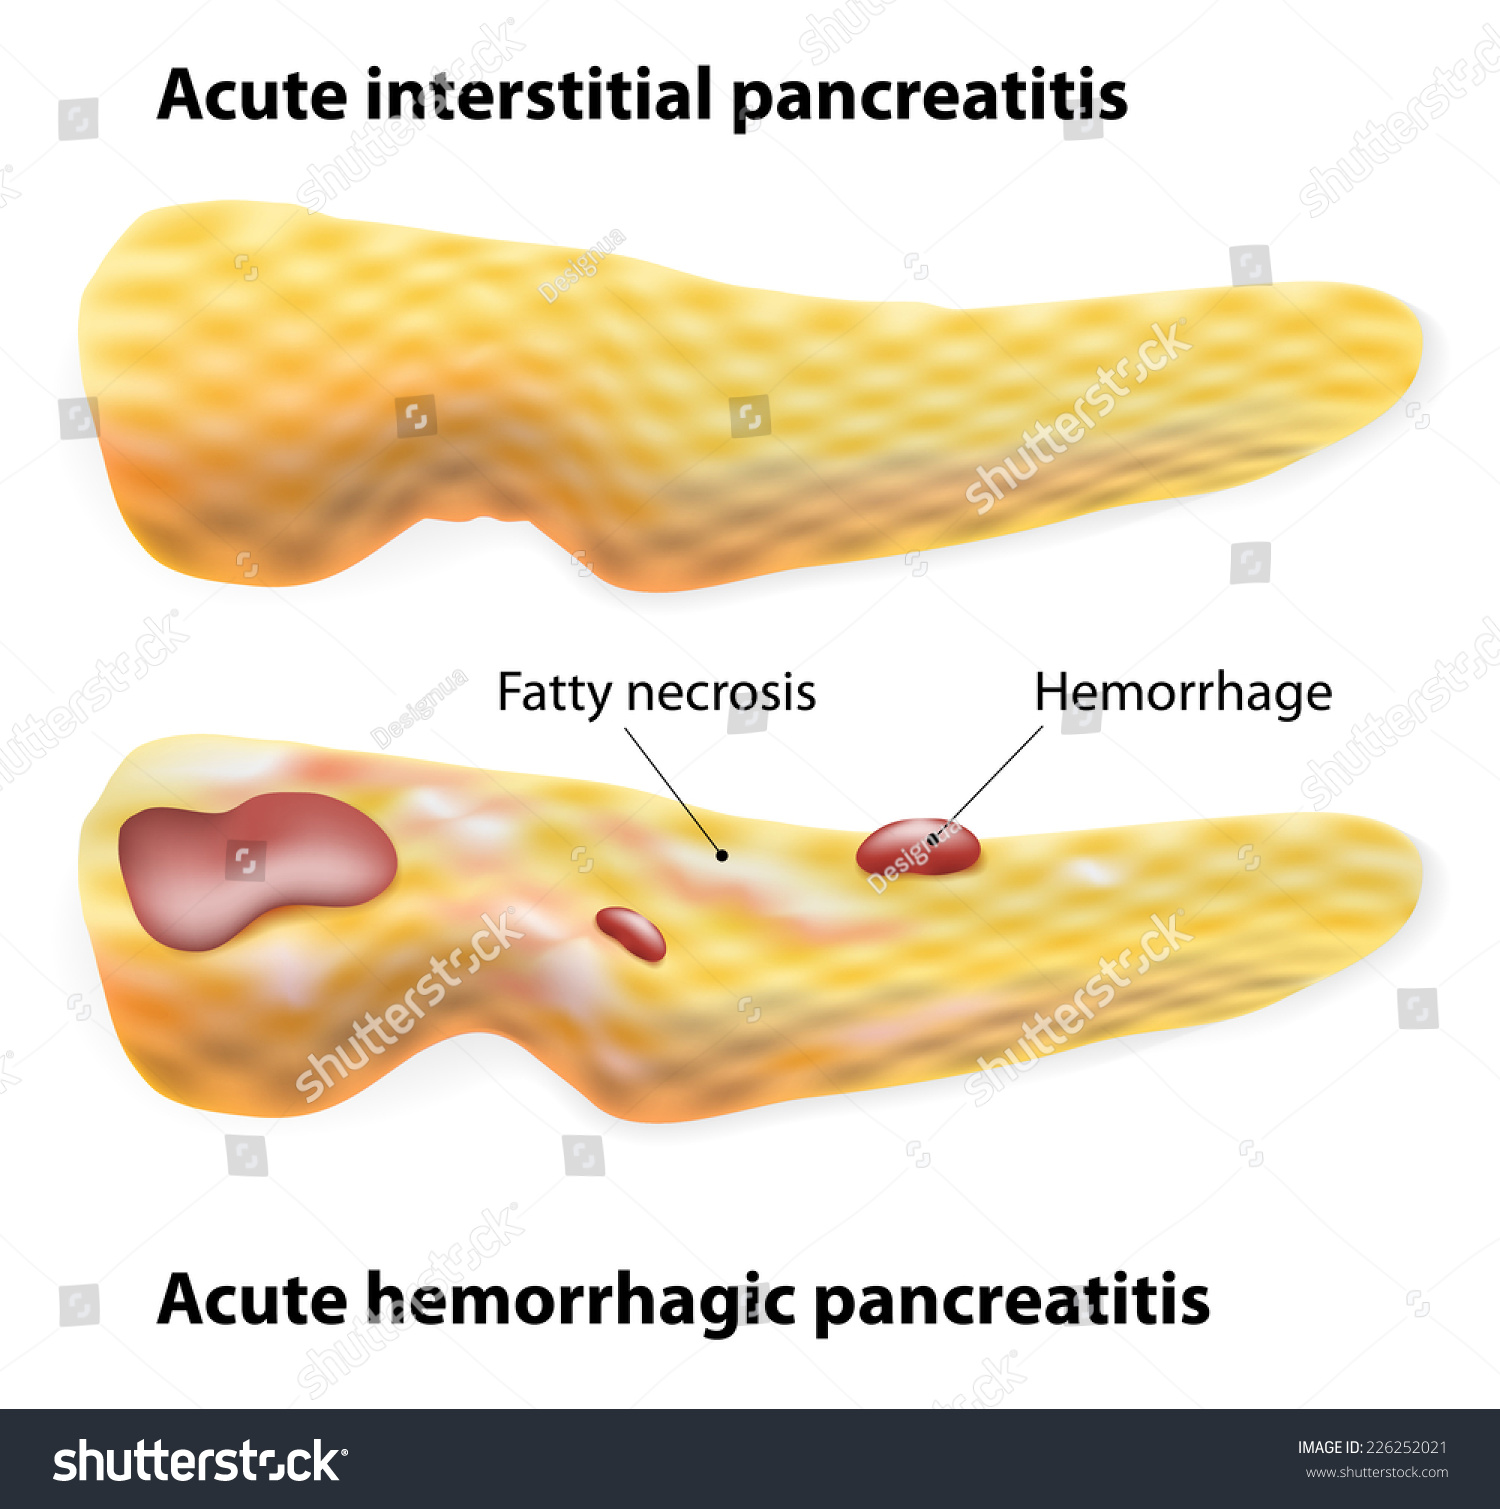 The anatomic location of pancreatic cancer is a prognostic factor for survival